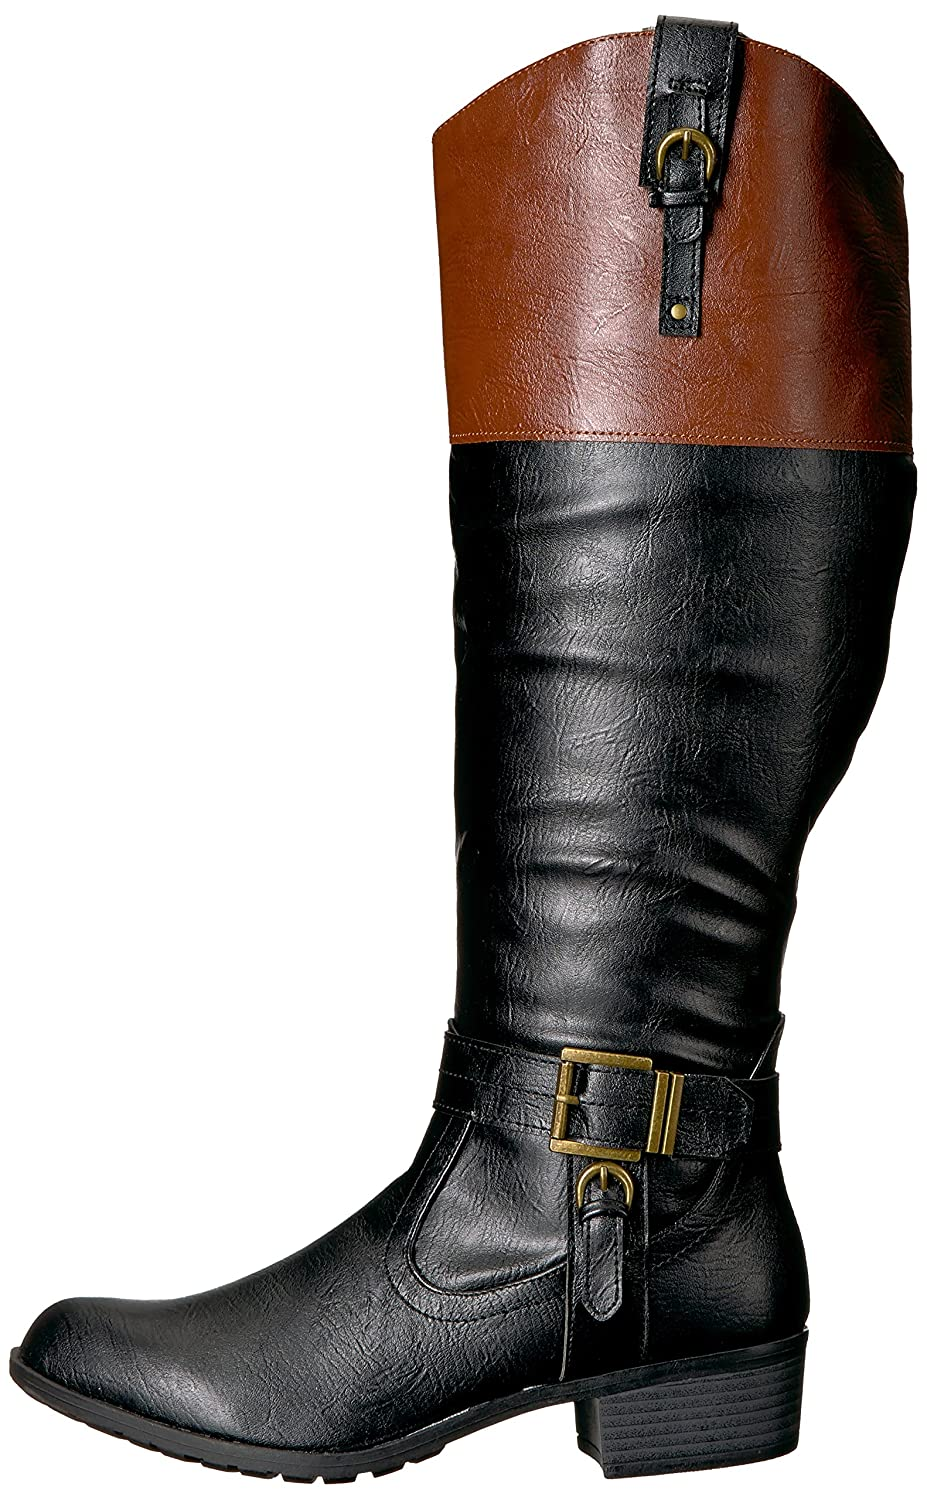 Rampage Women's Ivelia Fashion Boot Knee High Casual Riding Boot Fashion (Available In Wide Calf) B00VVJ67YC 6 B(M) US|Black/Cognac 53c4f9